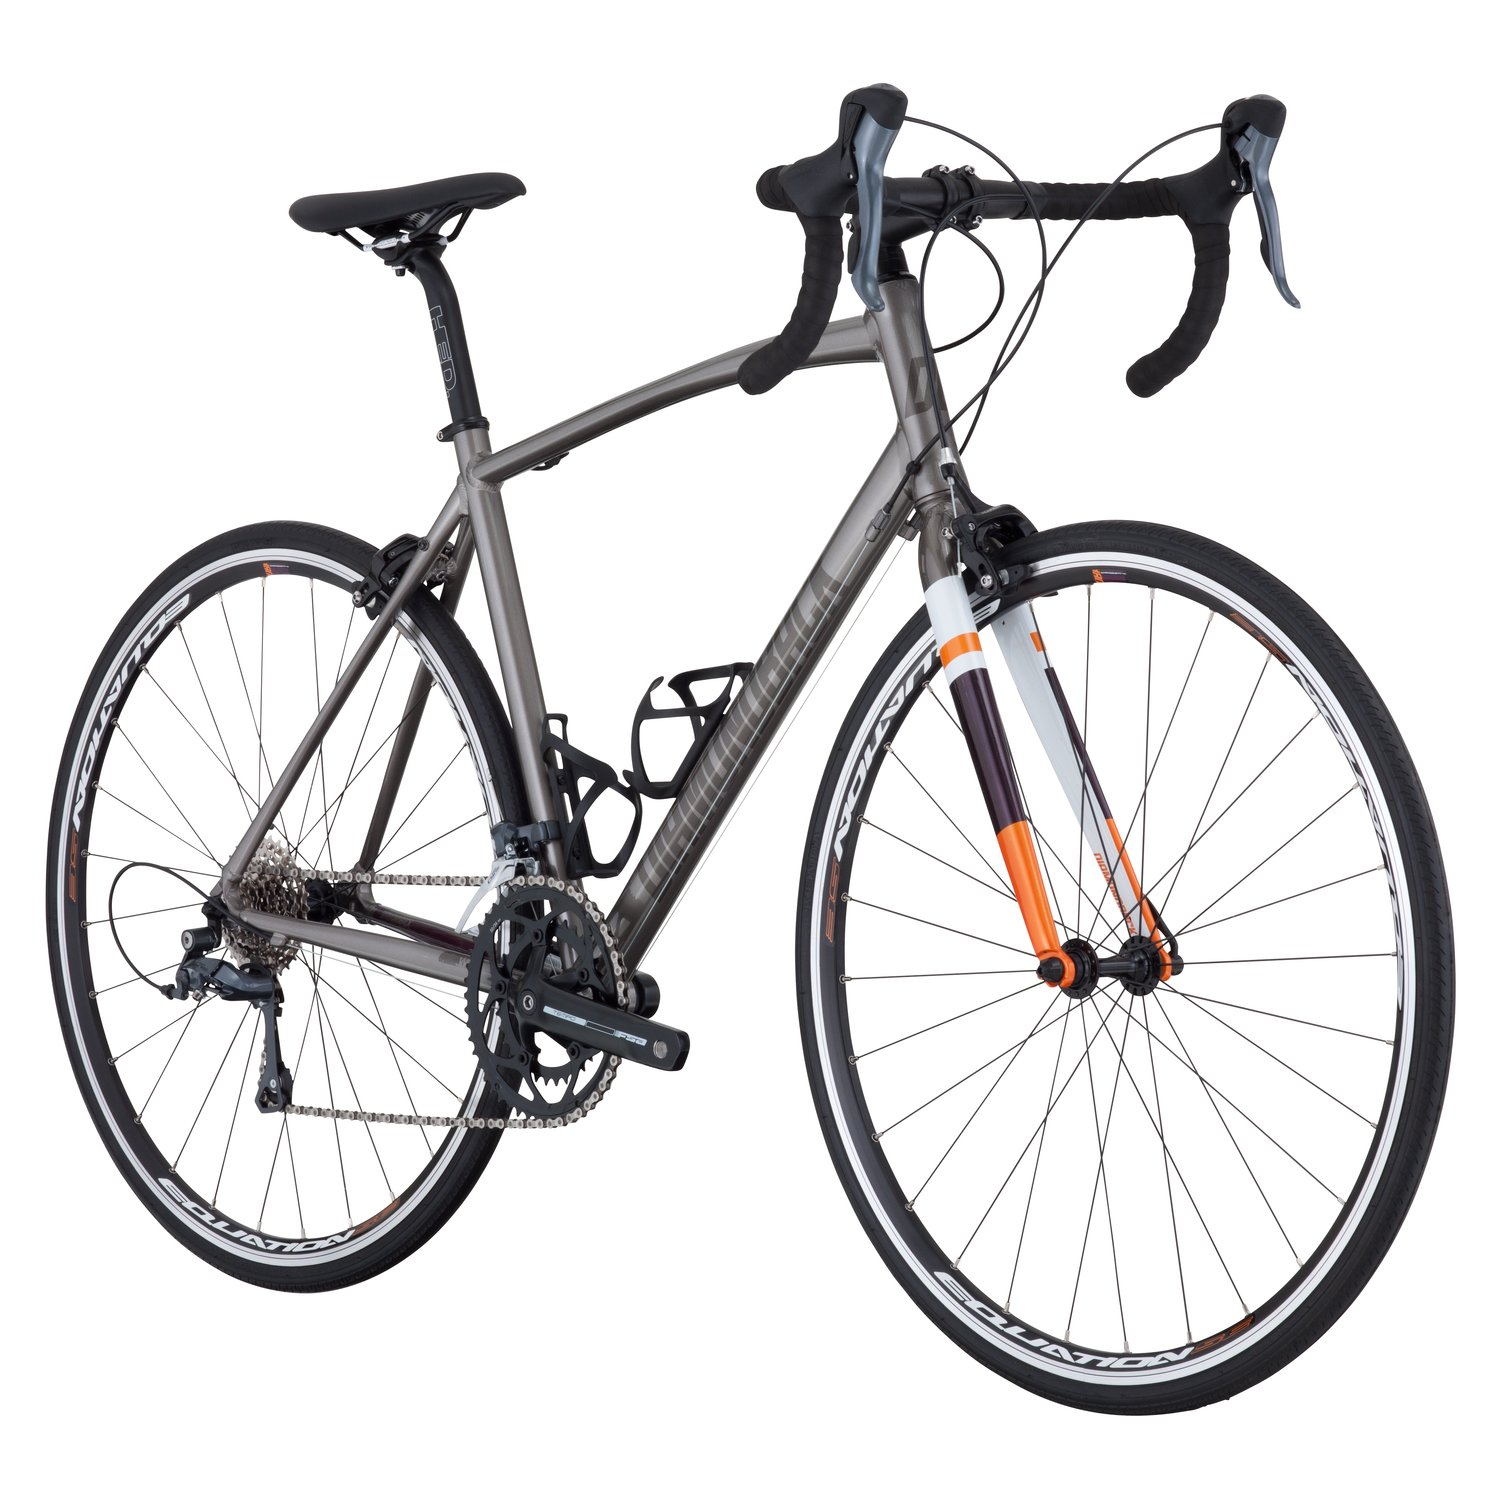 Amazon.com : Diamondback Bicycles 2016 Airen Sport Complete Women\'s ...